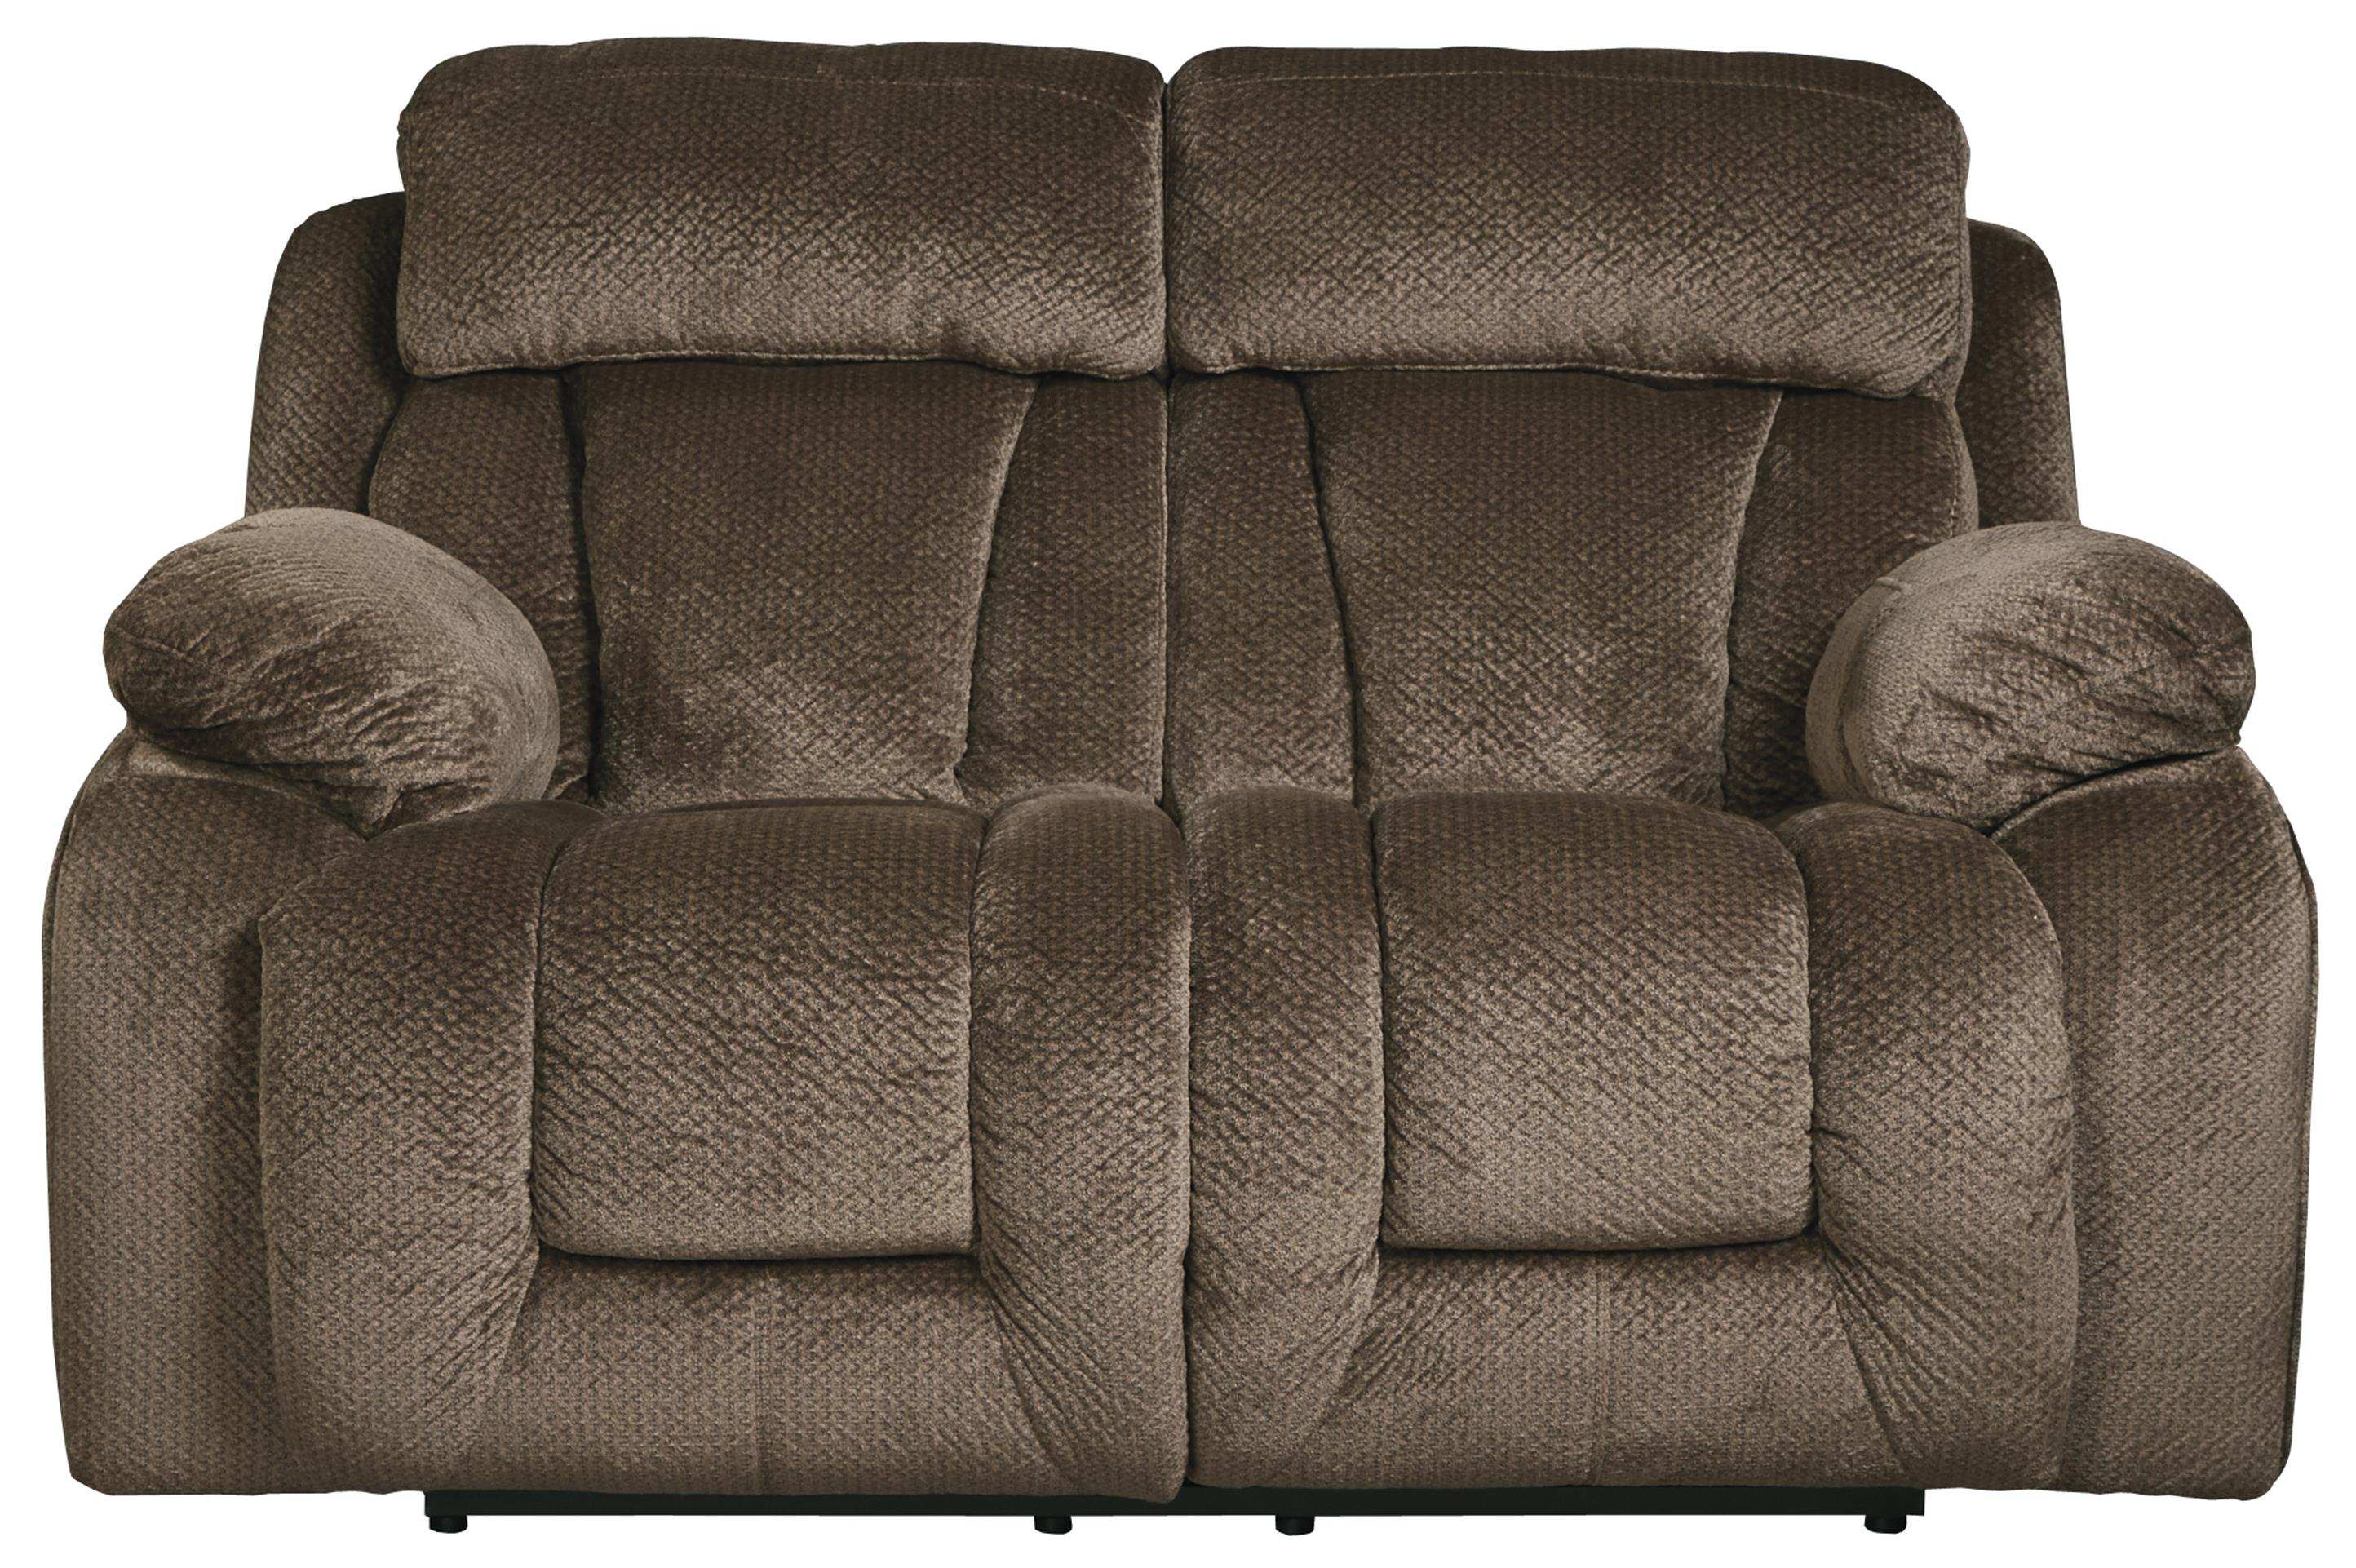 Signature Design by Ashley Stricklin Reclining Loveseat - Item Number: 8650386